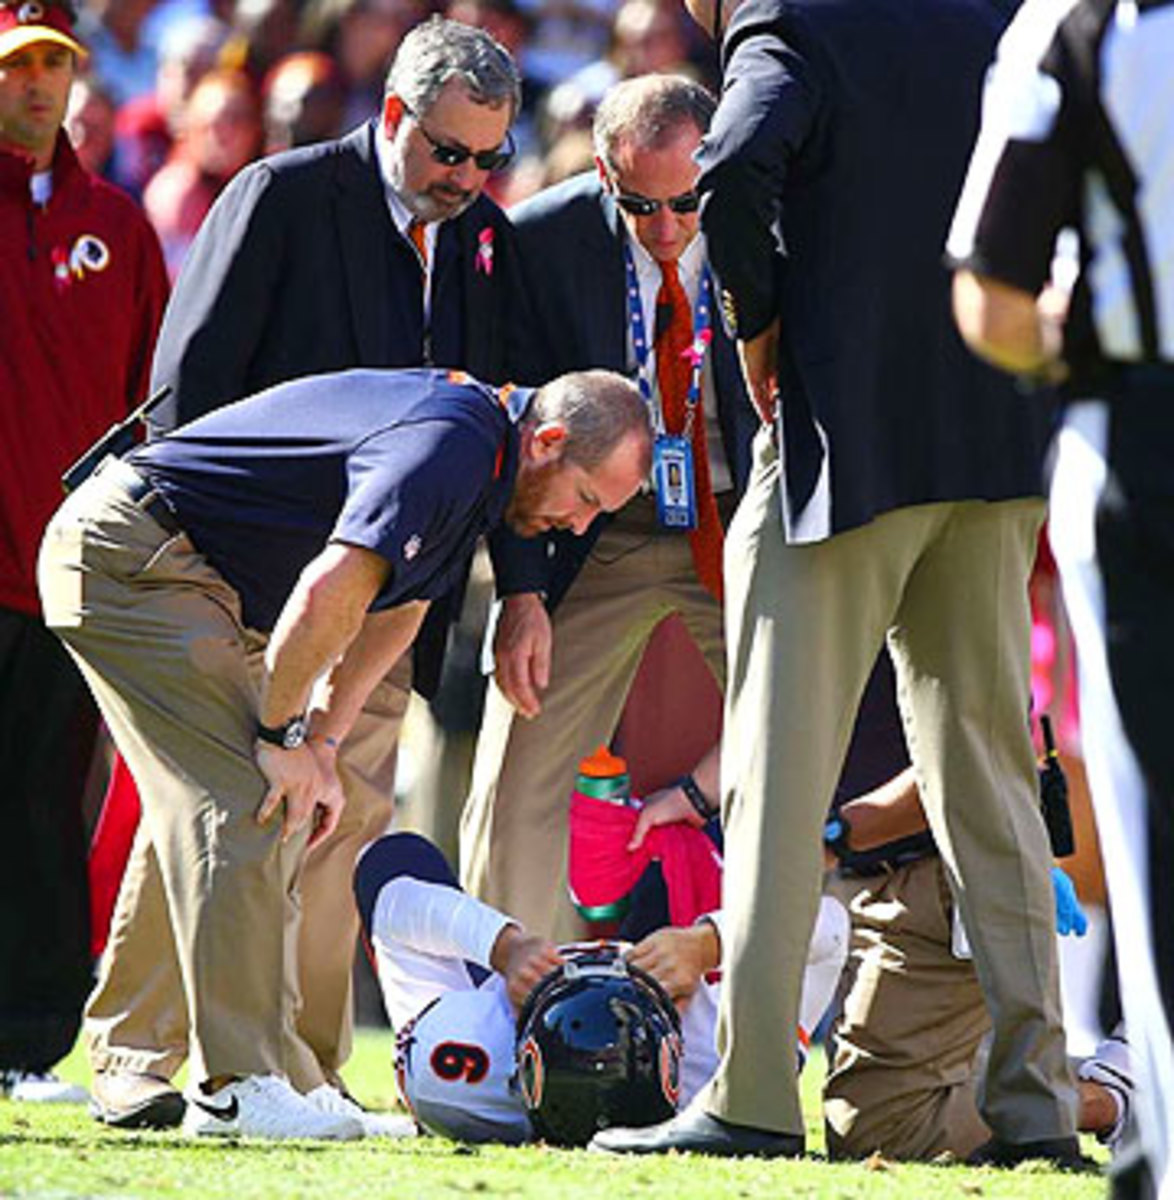 Cutler has missed time this season with a groin injury, as well as a high-ankle sprain. (Simon Bruty/SI)